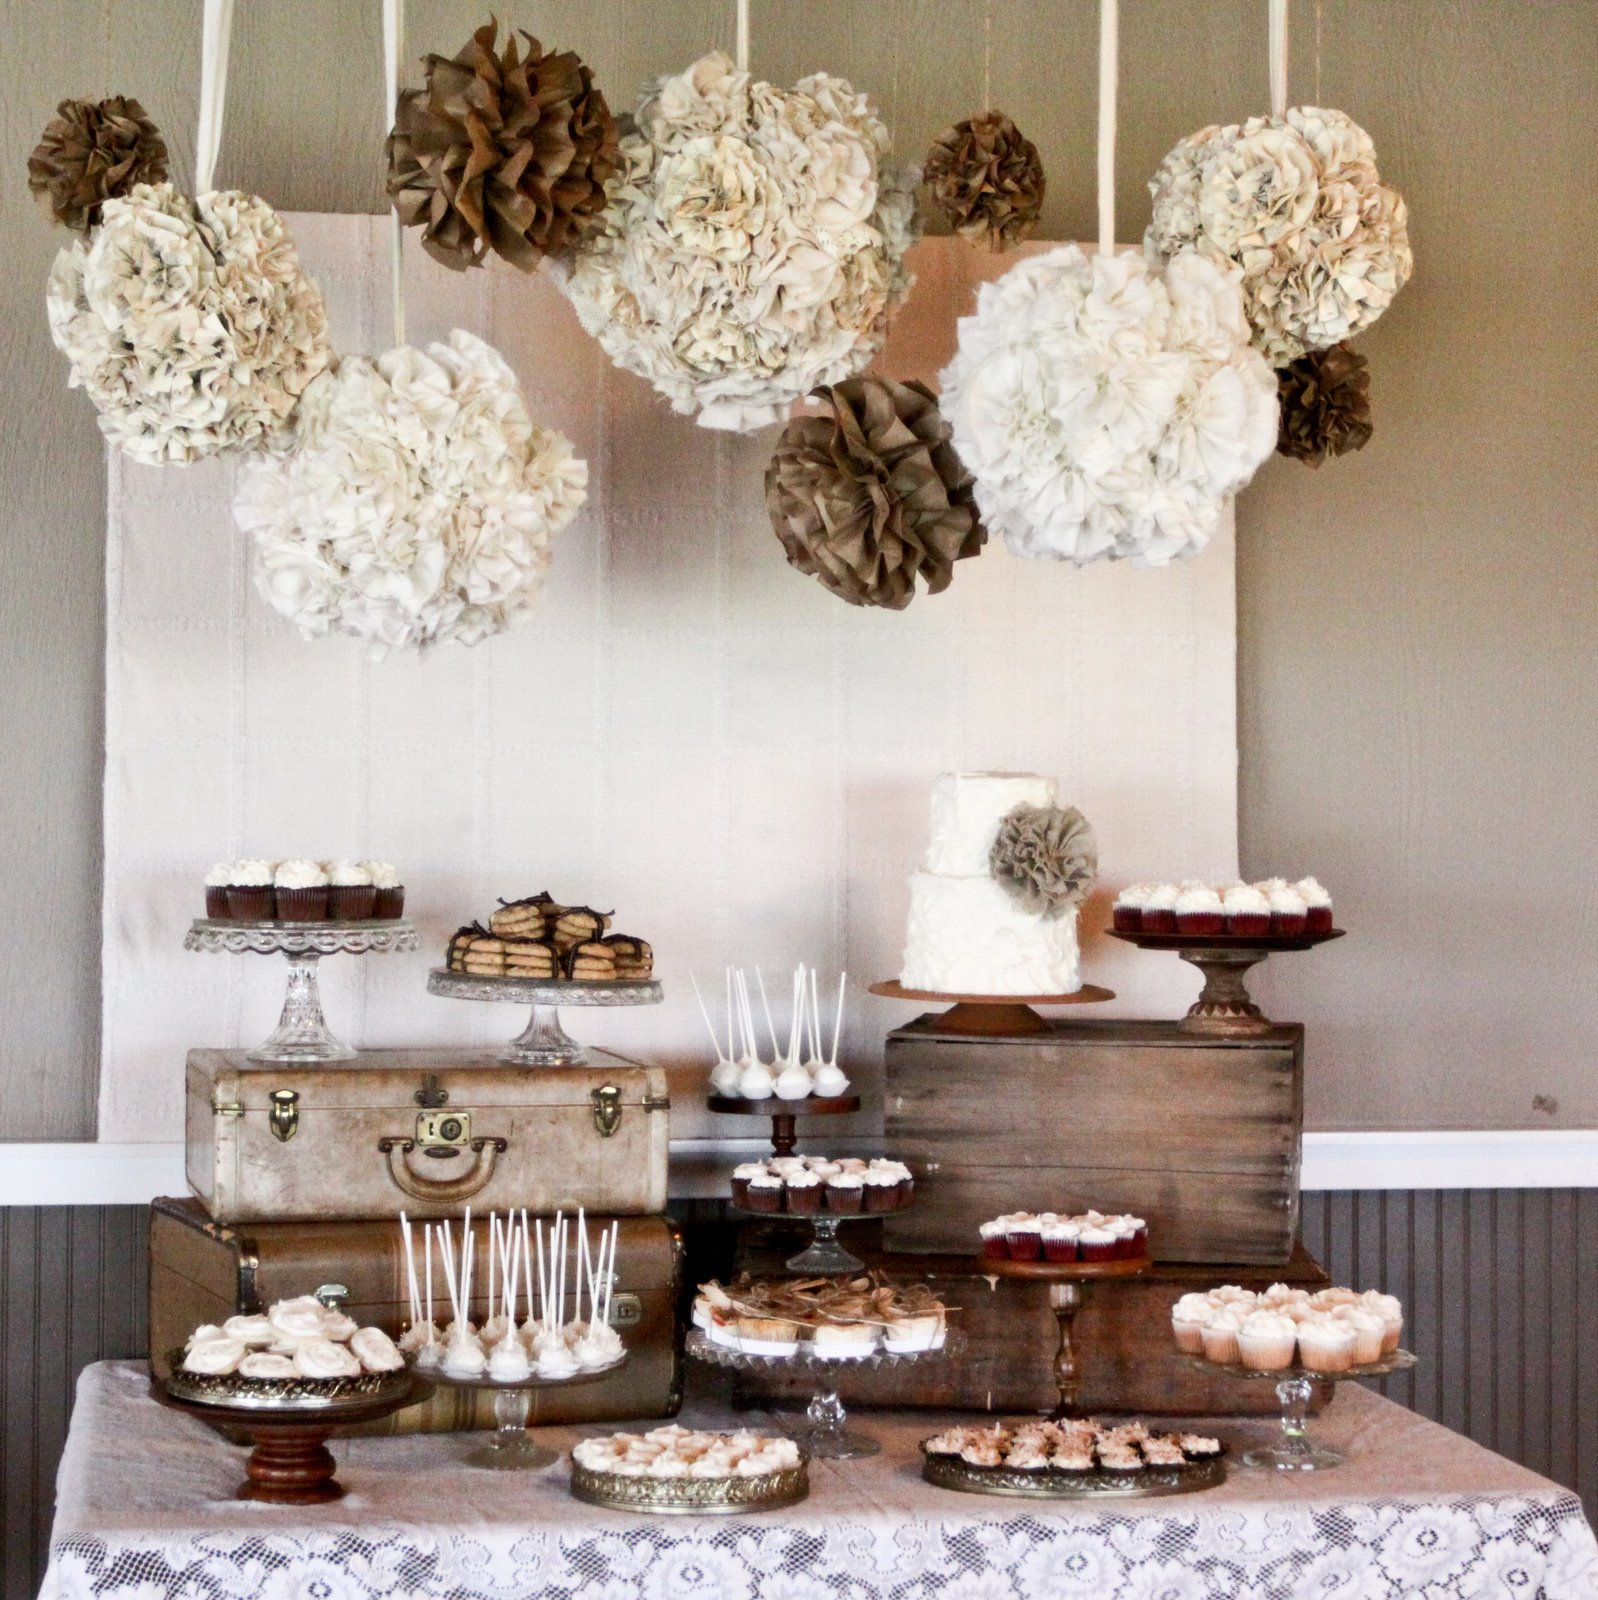 Red Dessert Table For Weddings: Organizitpartystyling: Wedding Dessert Table Collection